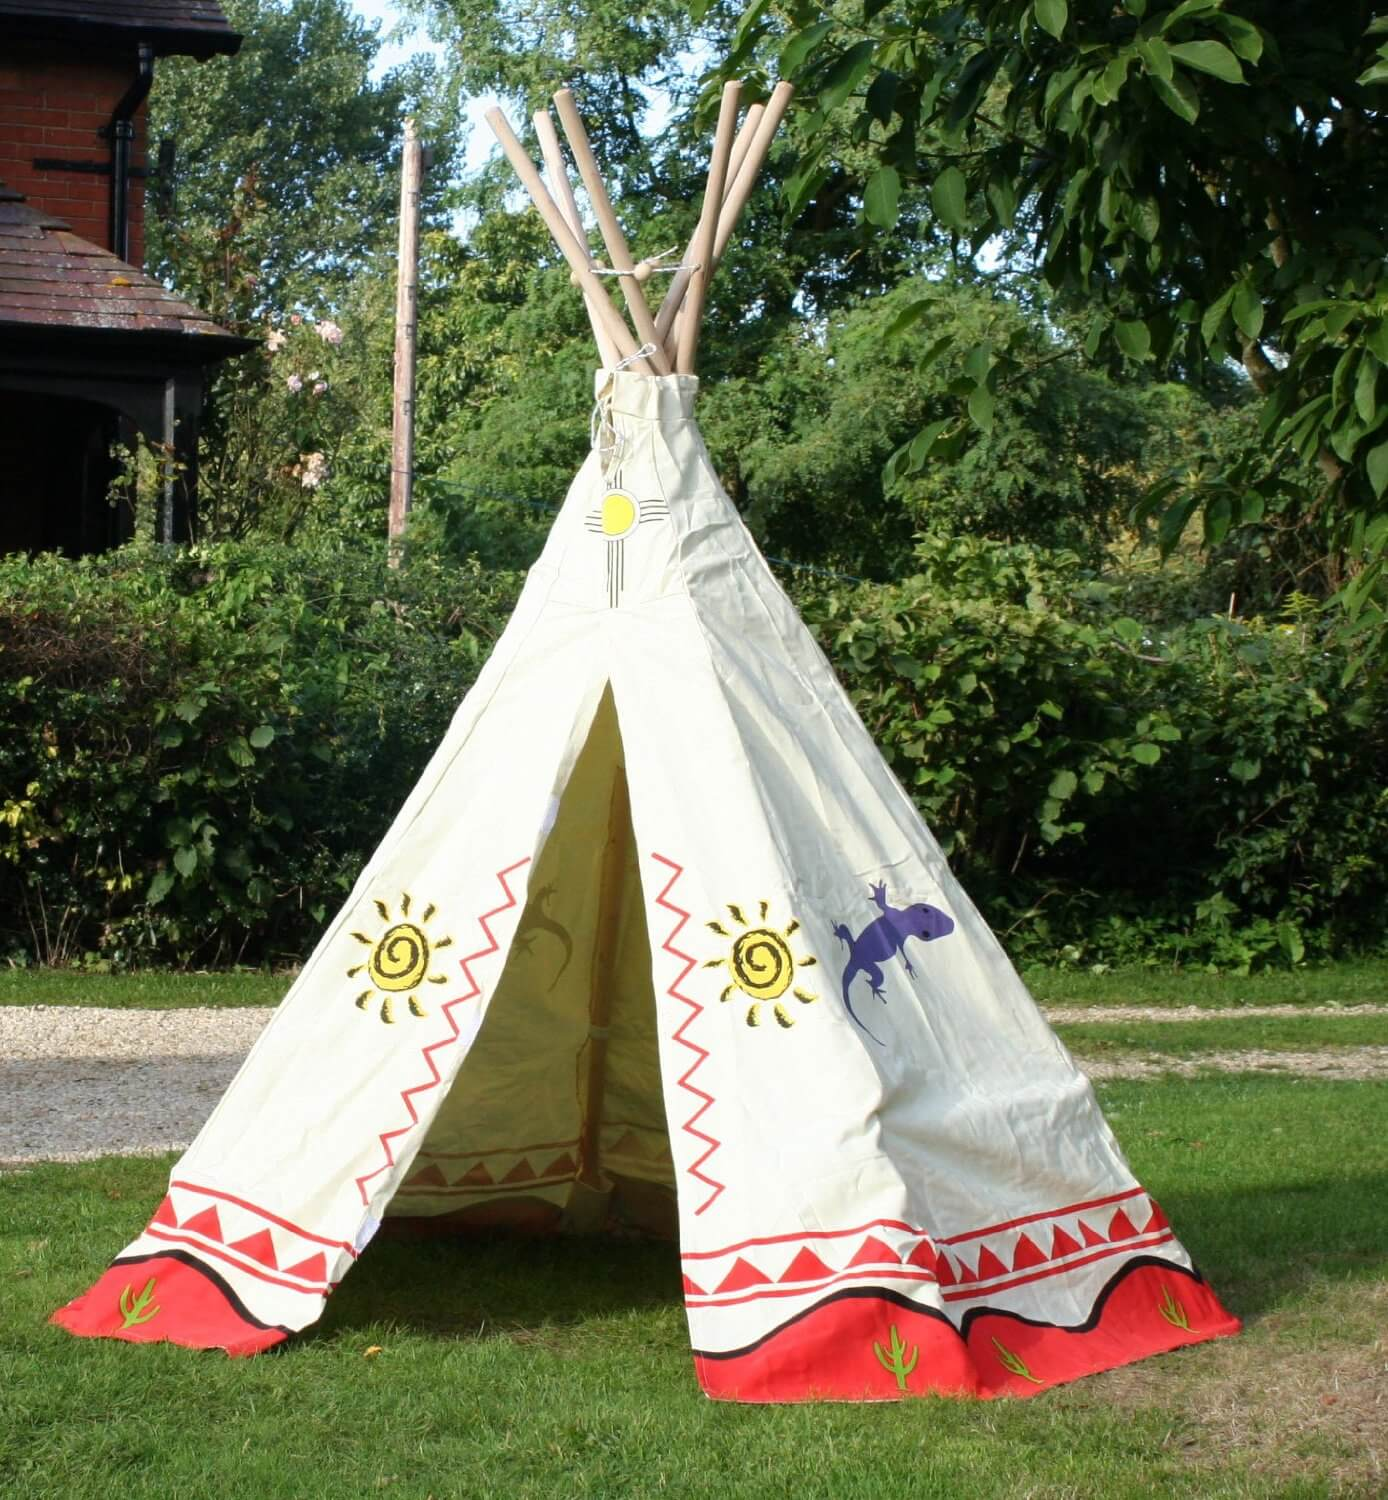 garden games indianerzelt kinderzimmer tipi zelt kinderzimmer. Black Bedroom Furniture Sets. Home Design Ideas